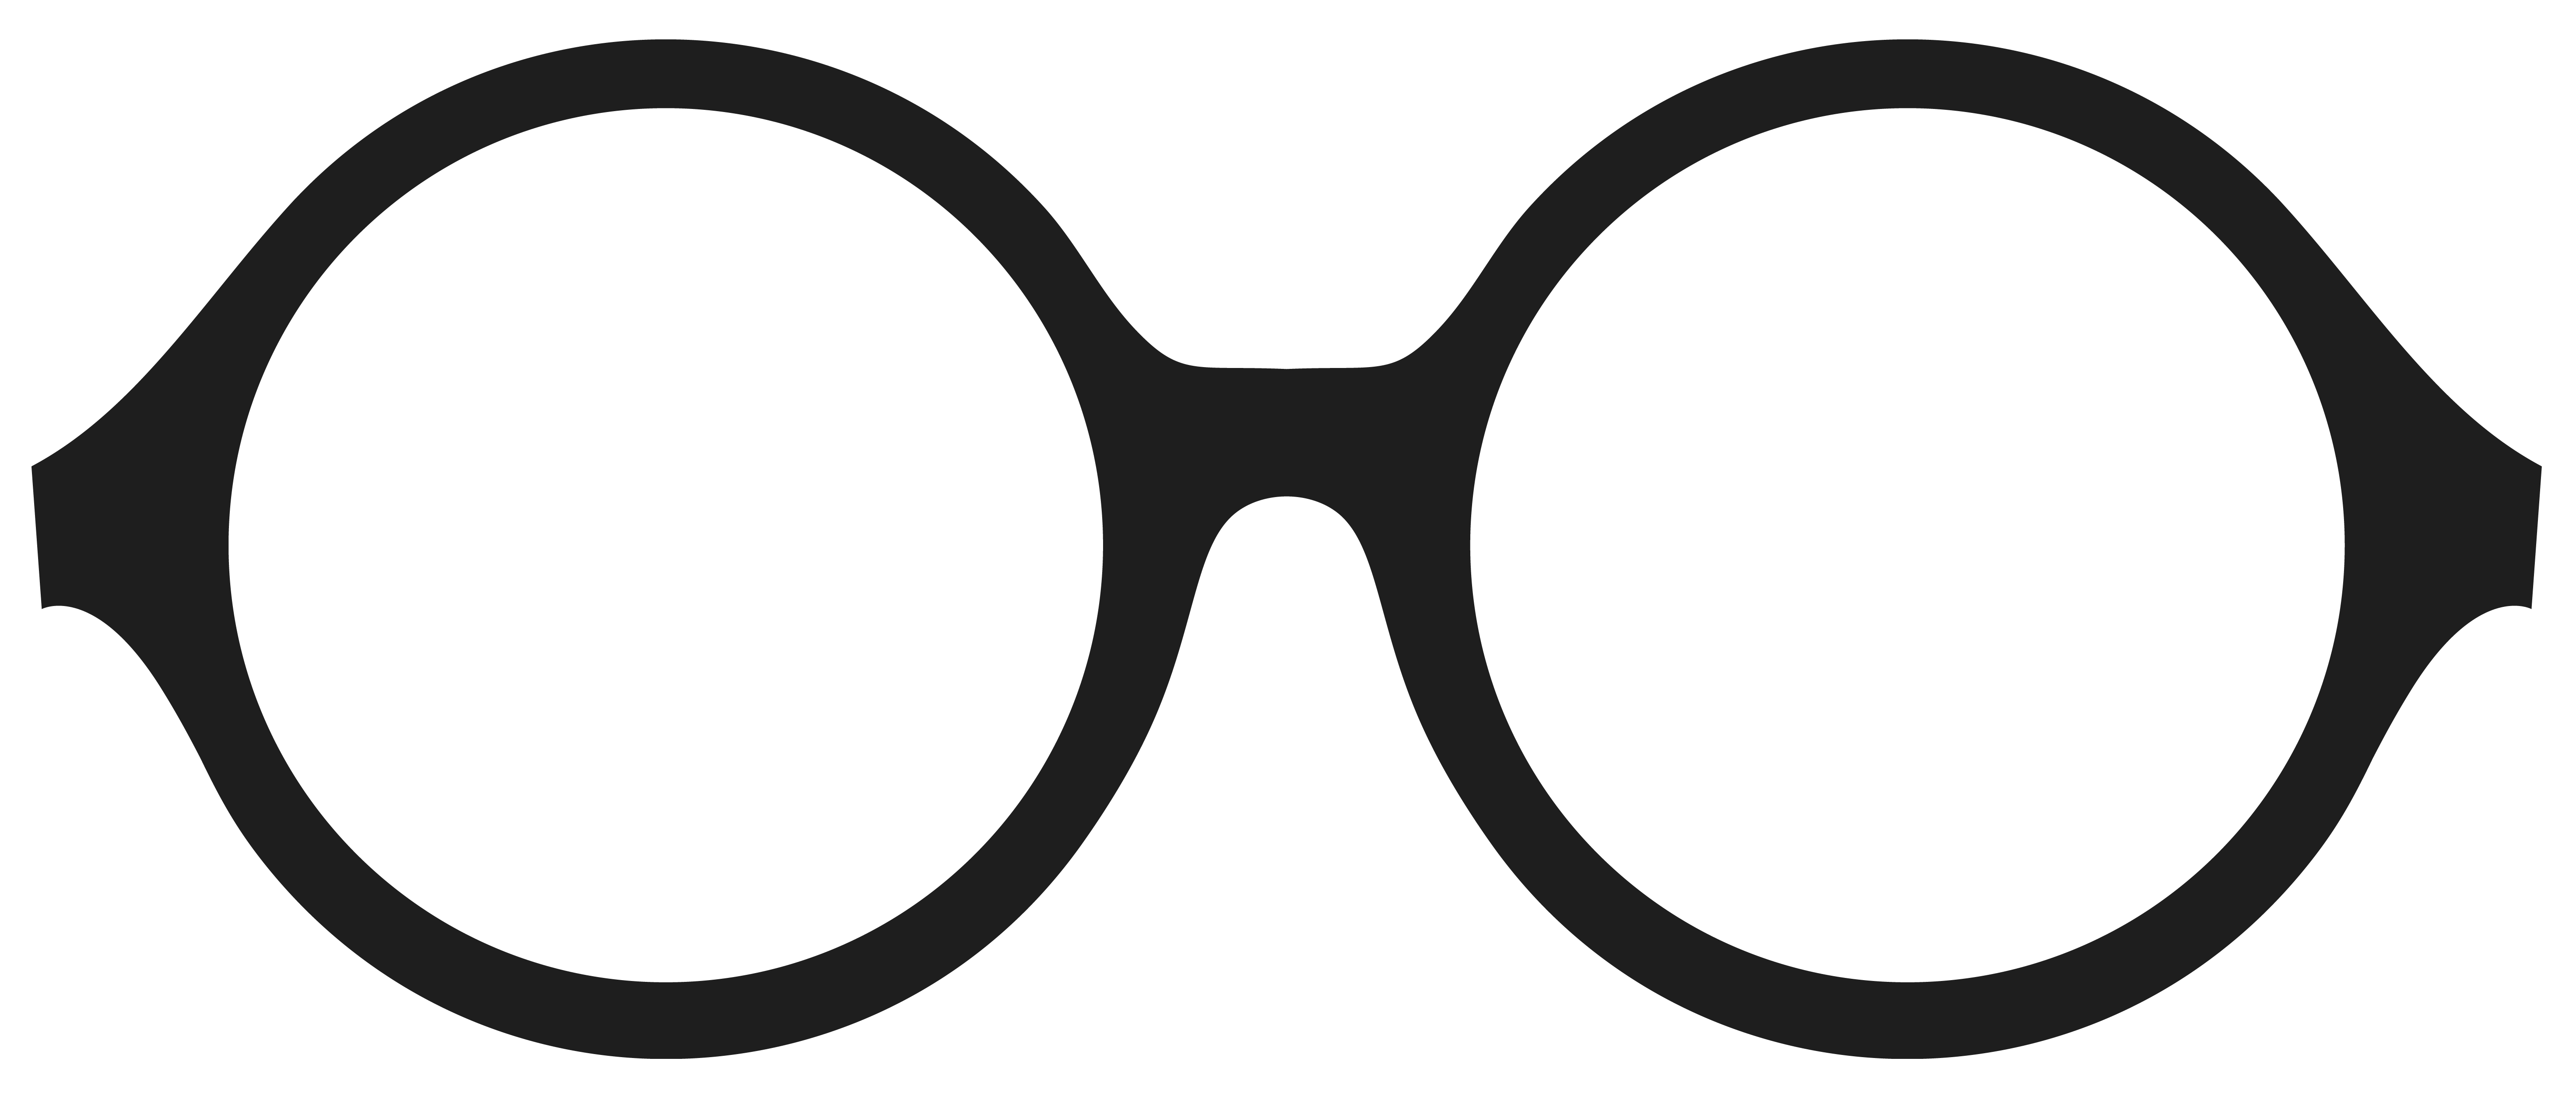 5885x2498 Spectacles Clipart Round Glass